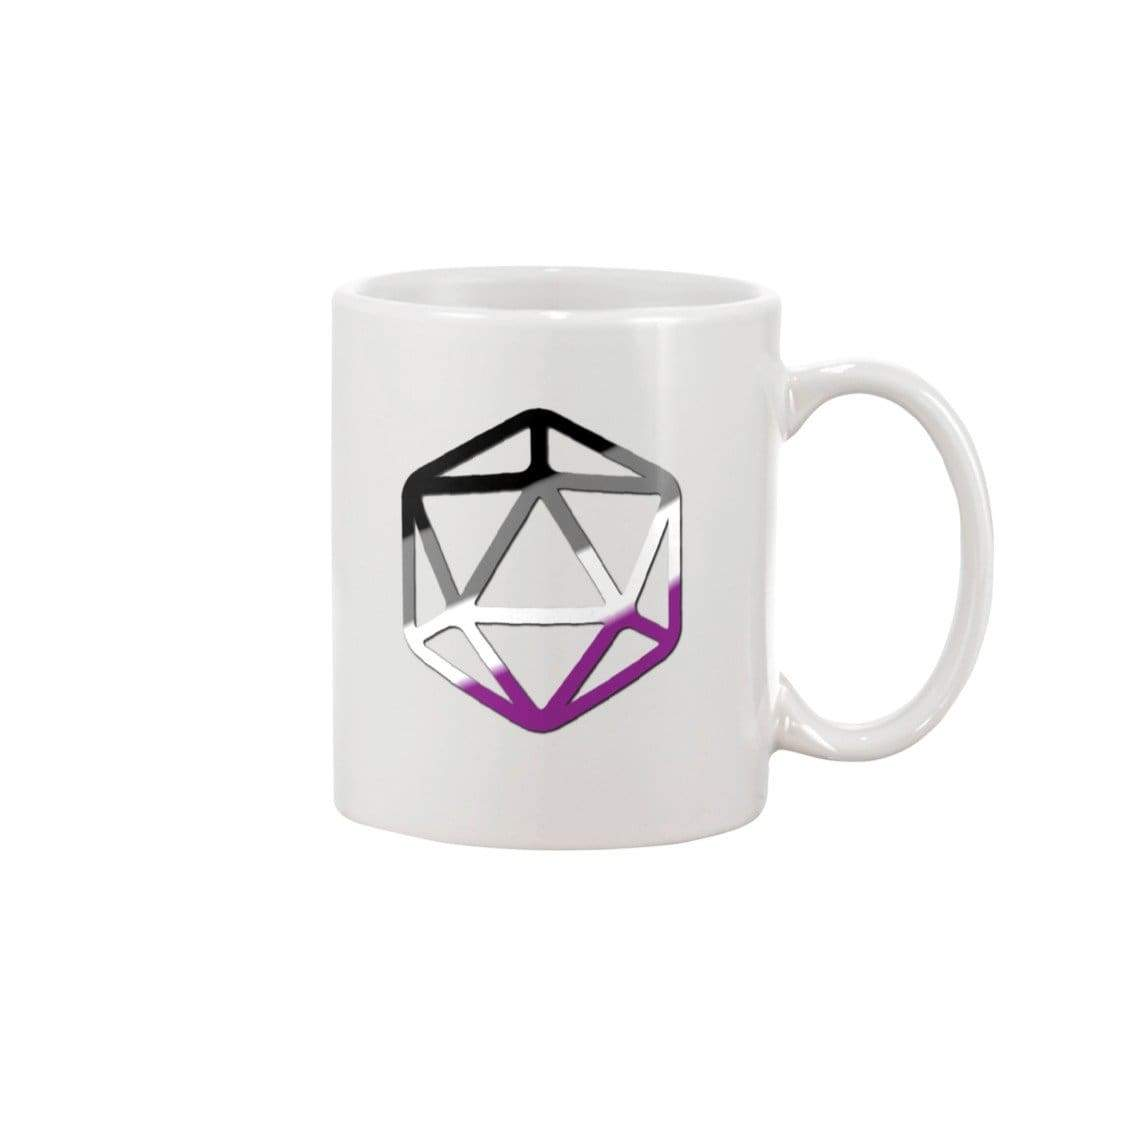 D20 Critical Pride Ace Pride 11oz Coffee Mug - White / 11OZ - Mugs